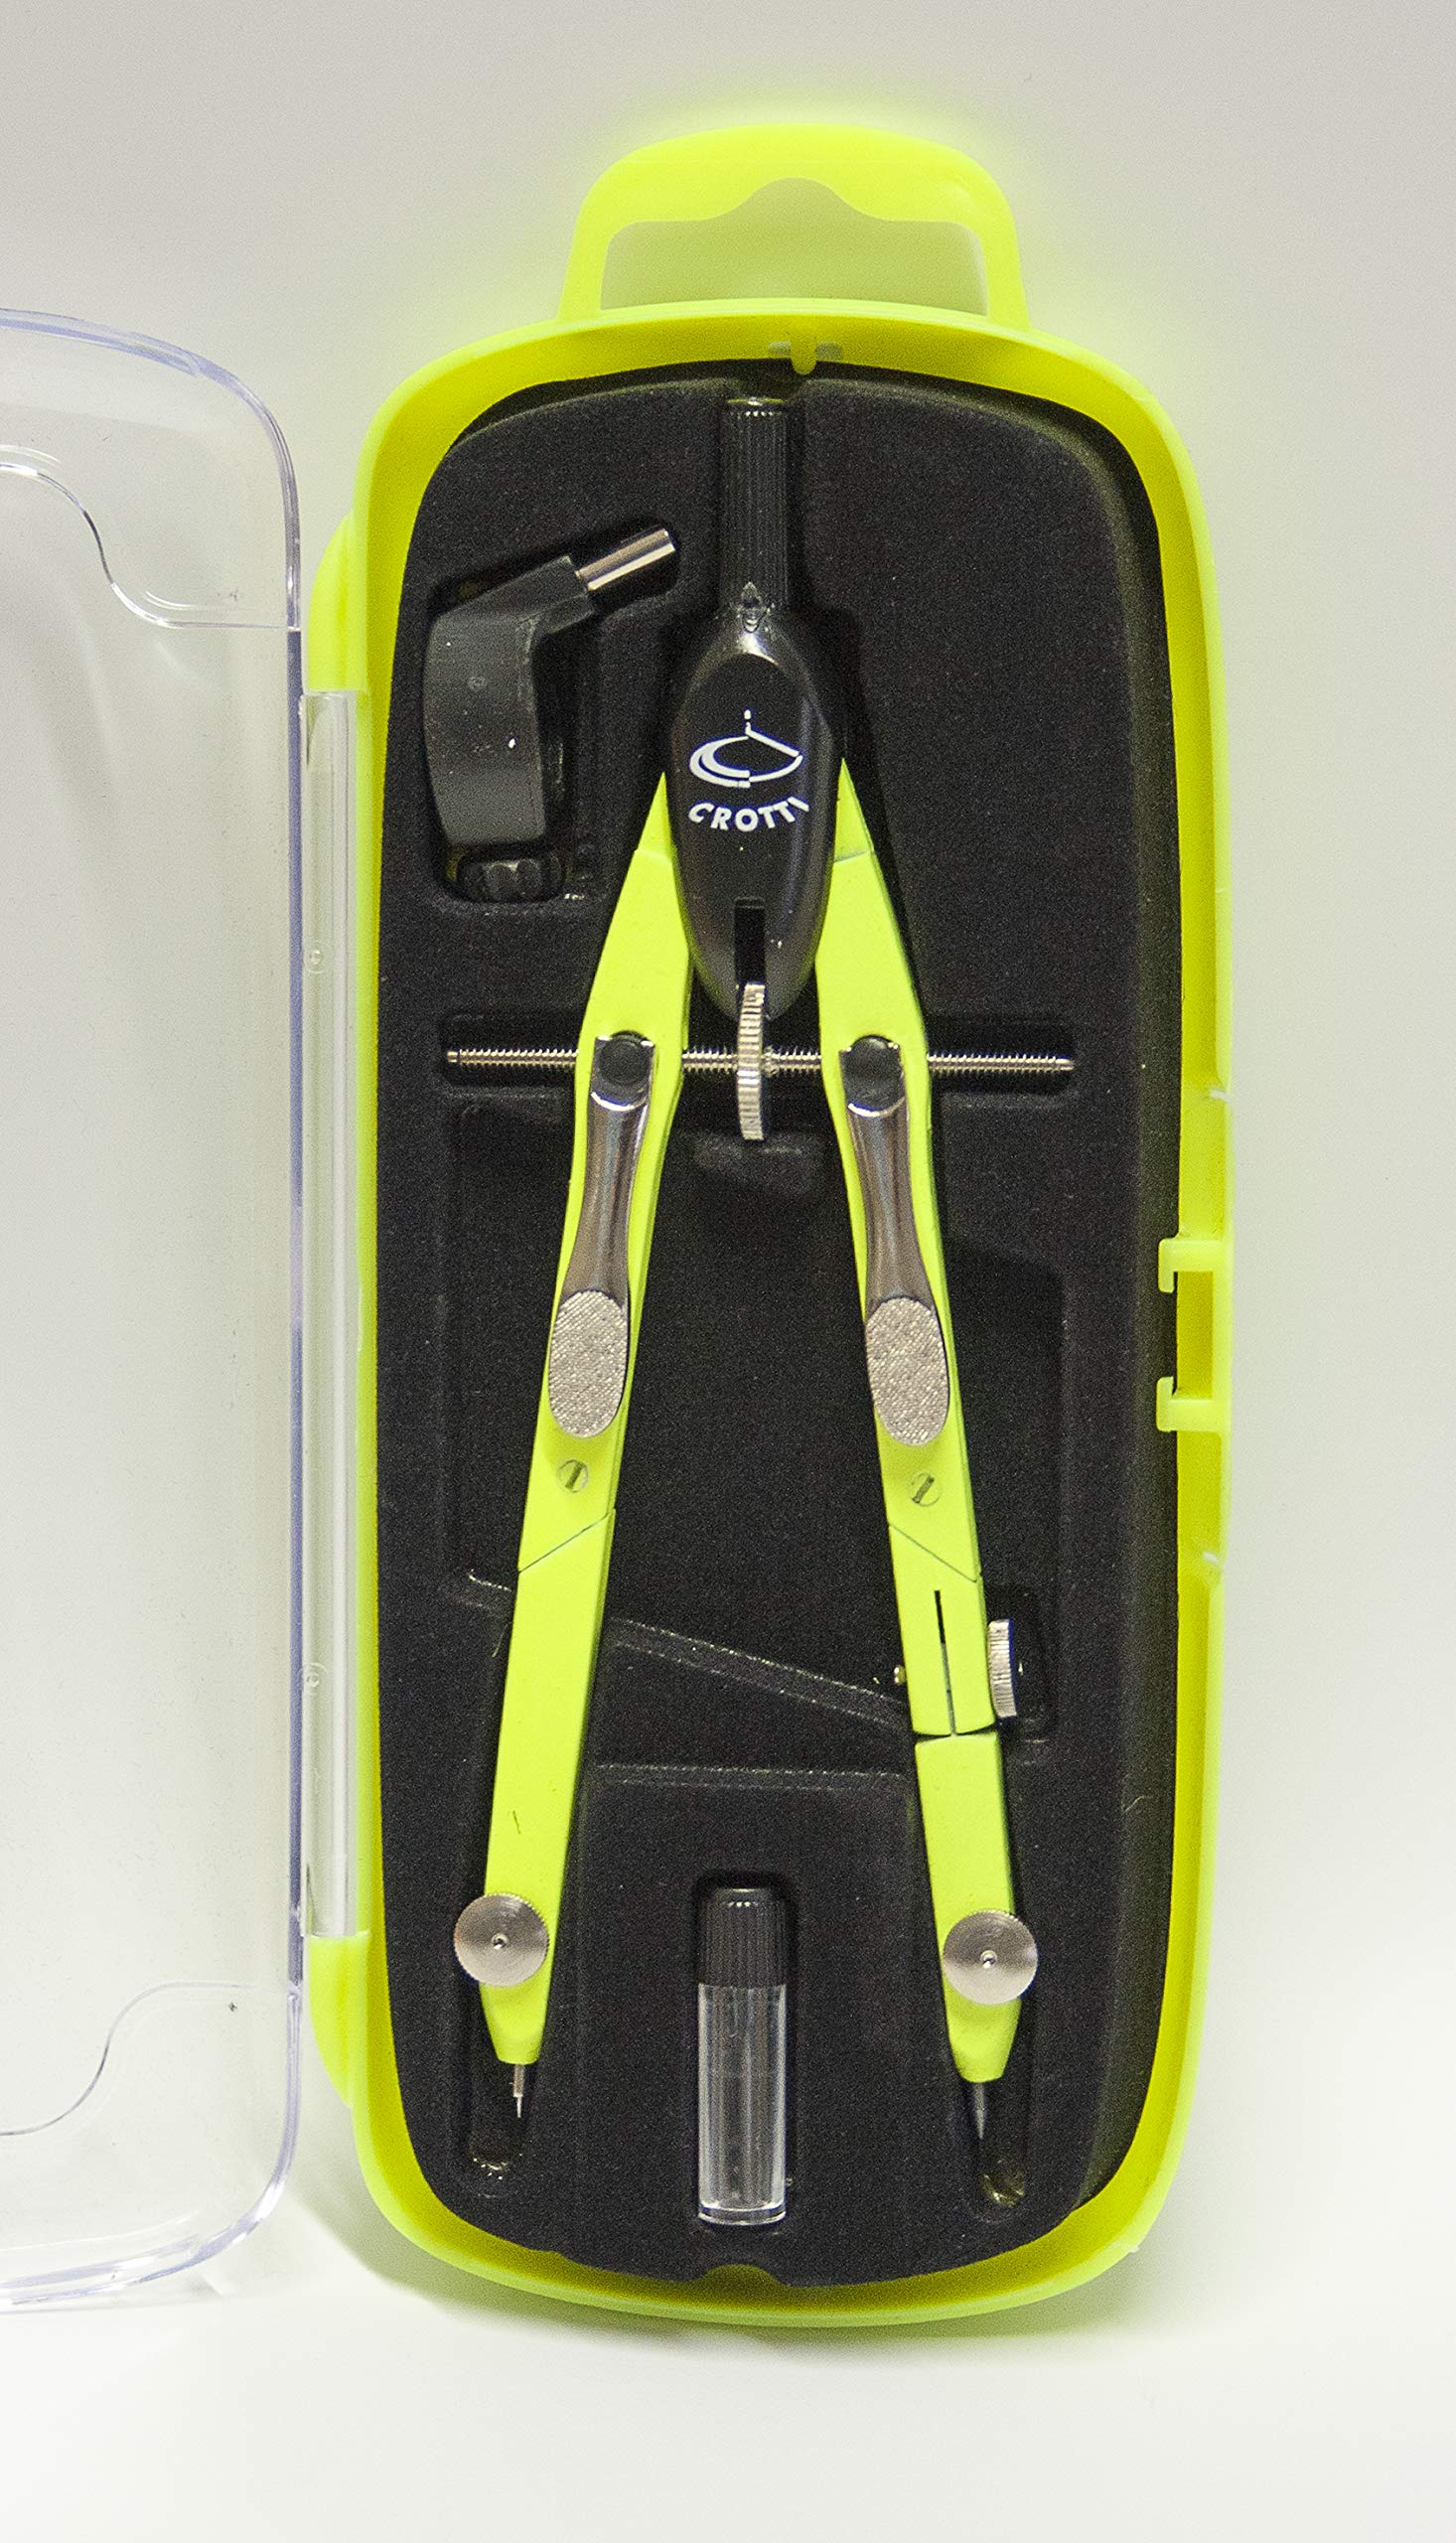 Metal balaustrone Double Joint with Quick Adjustment by Means of Metal levers - Neon Yellow.